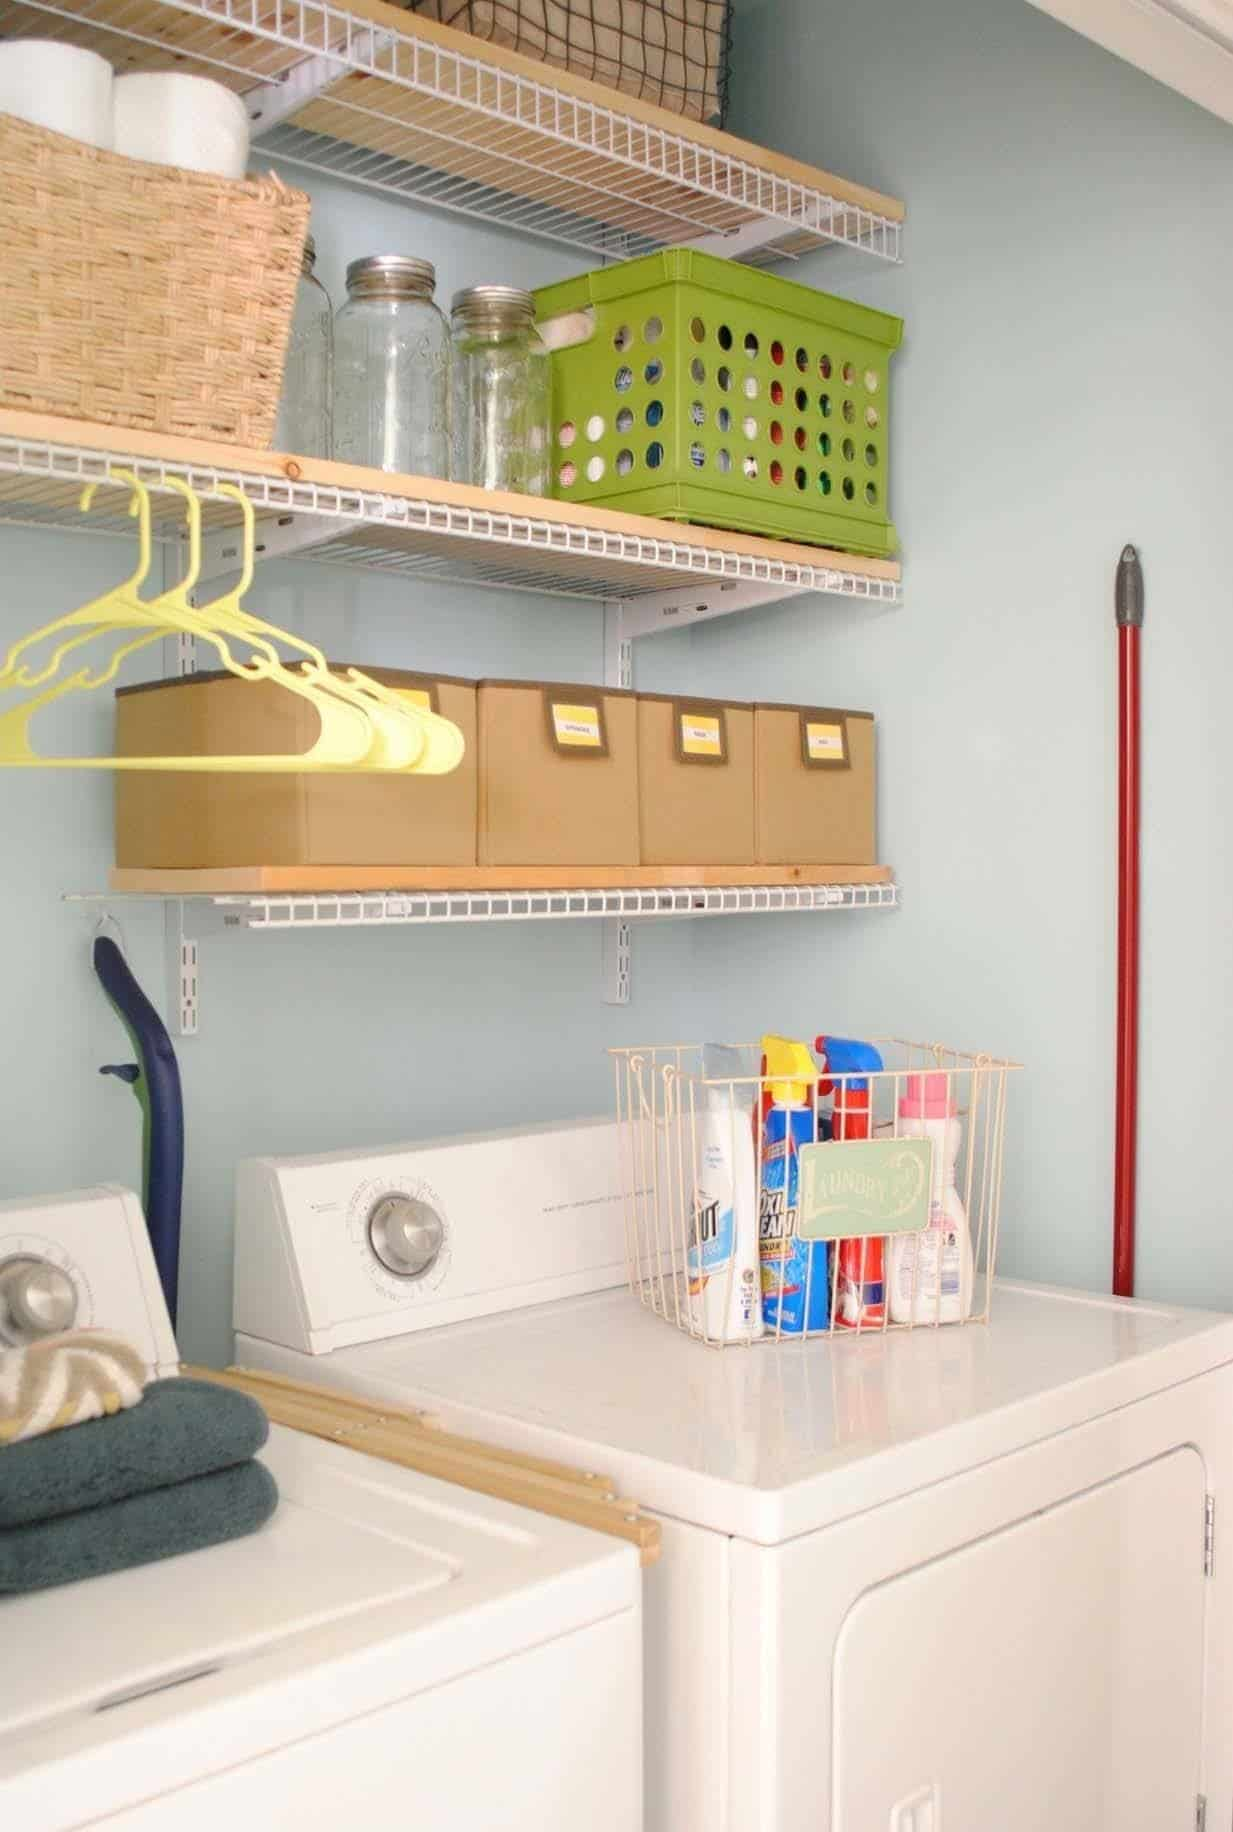 Laundry Room Organization Ideas-28-1 Kindesign